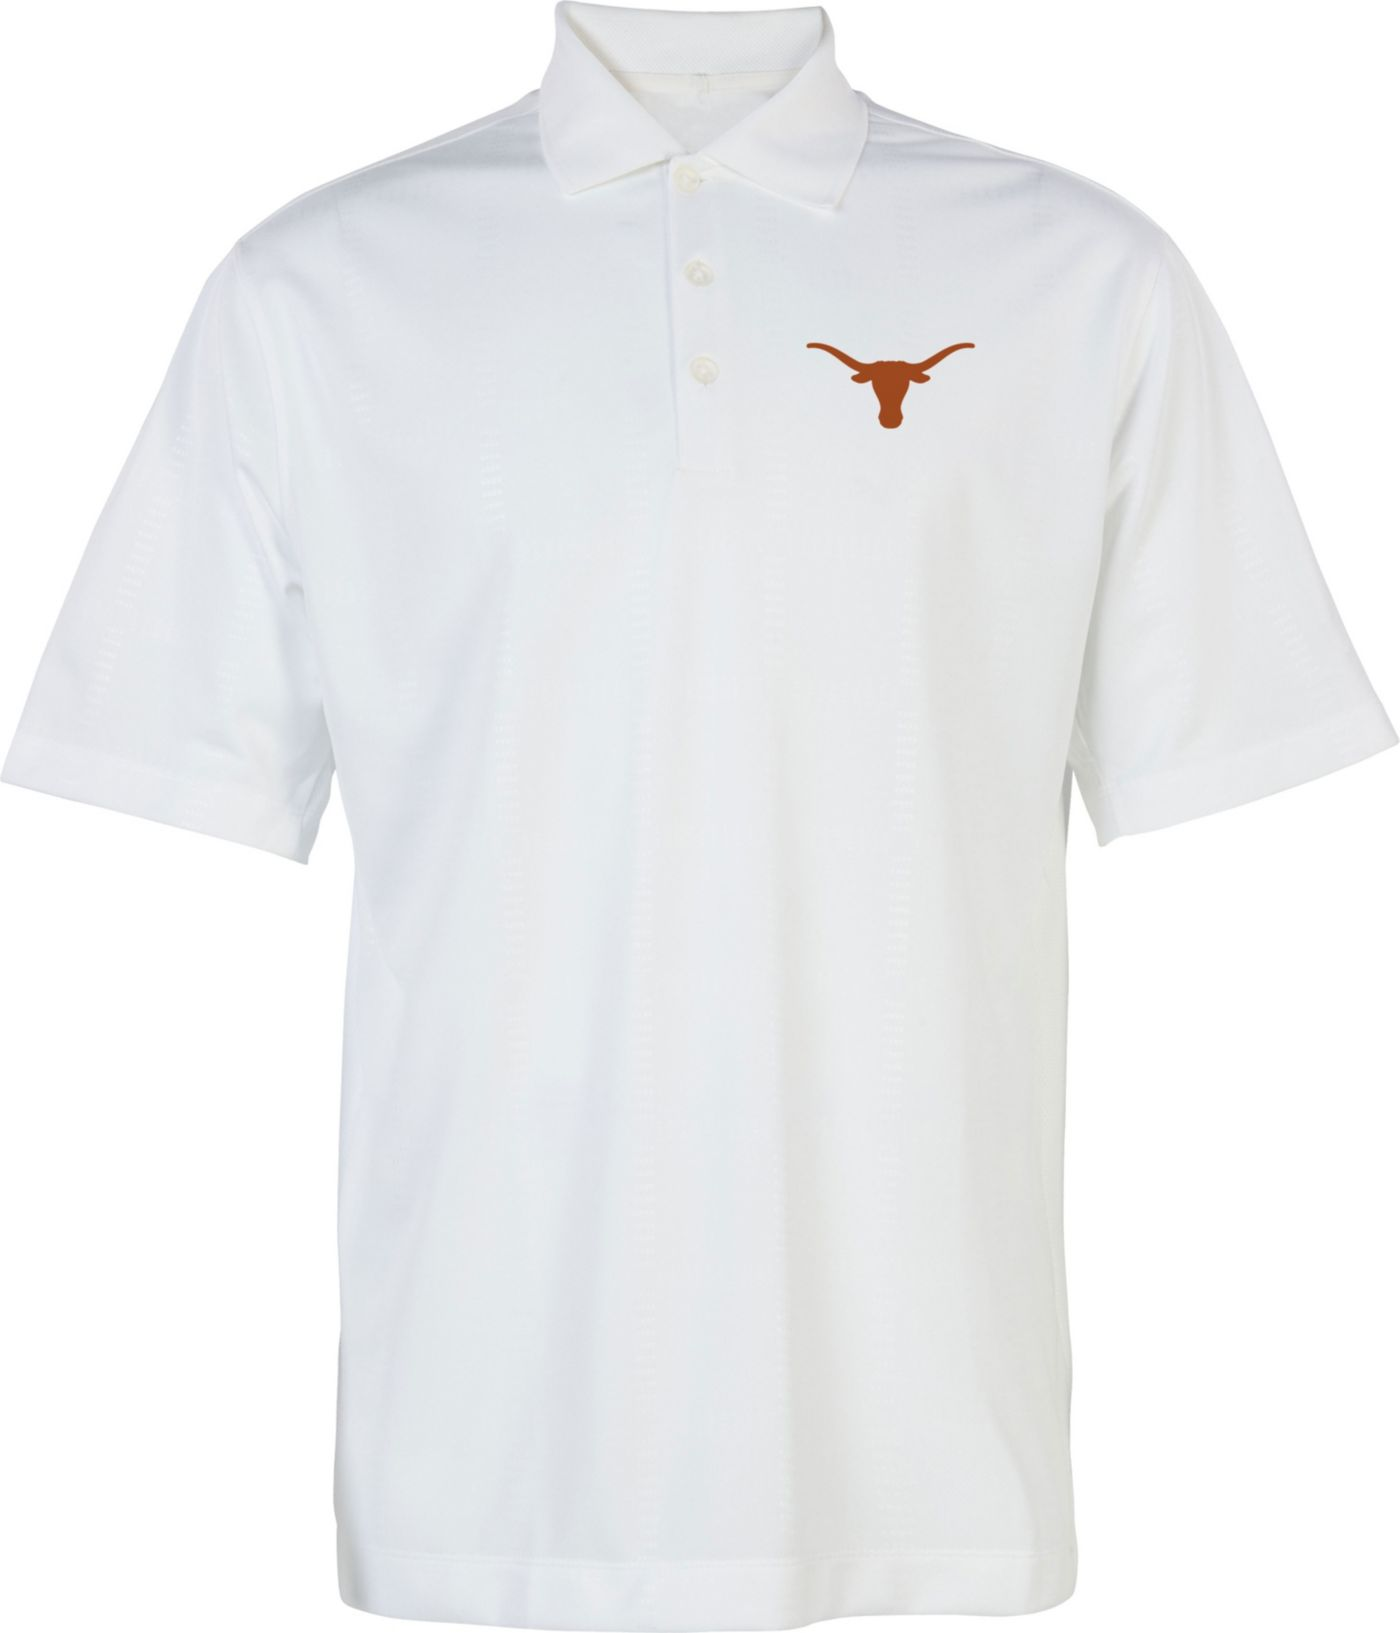 University of Texas Authentic Apparel Men's Texas Longhorns White Silhouette Polo